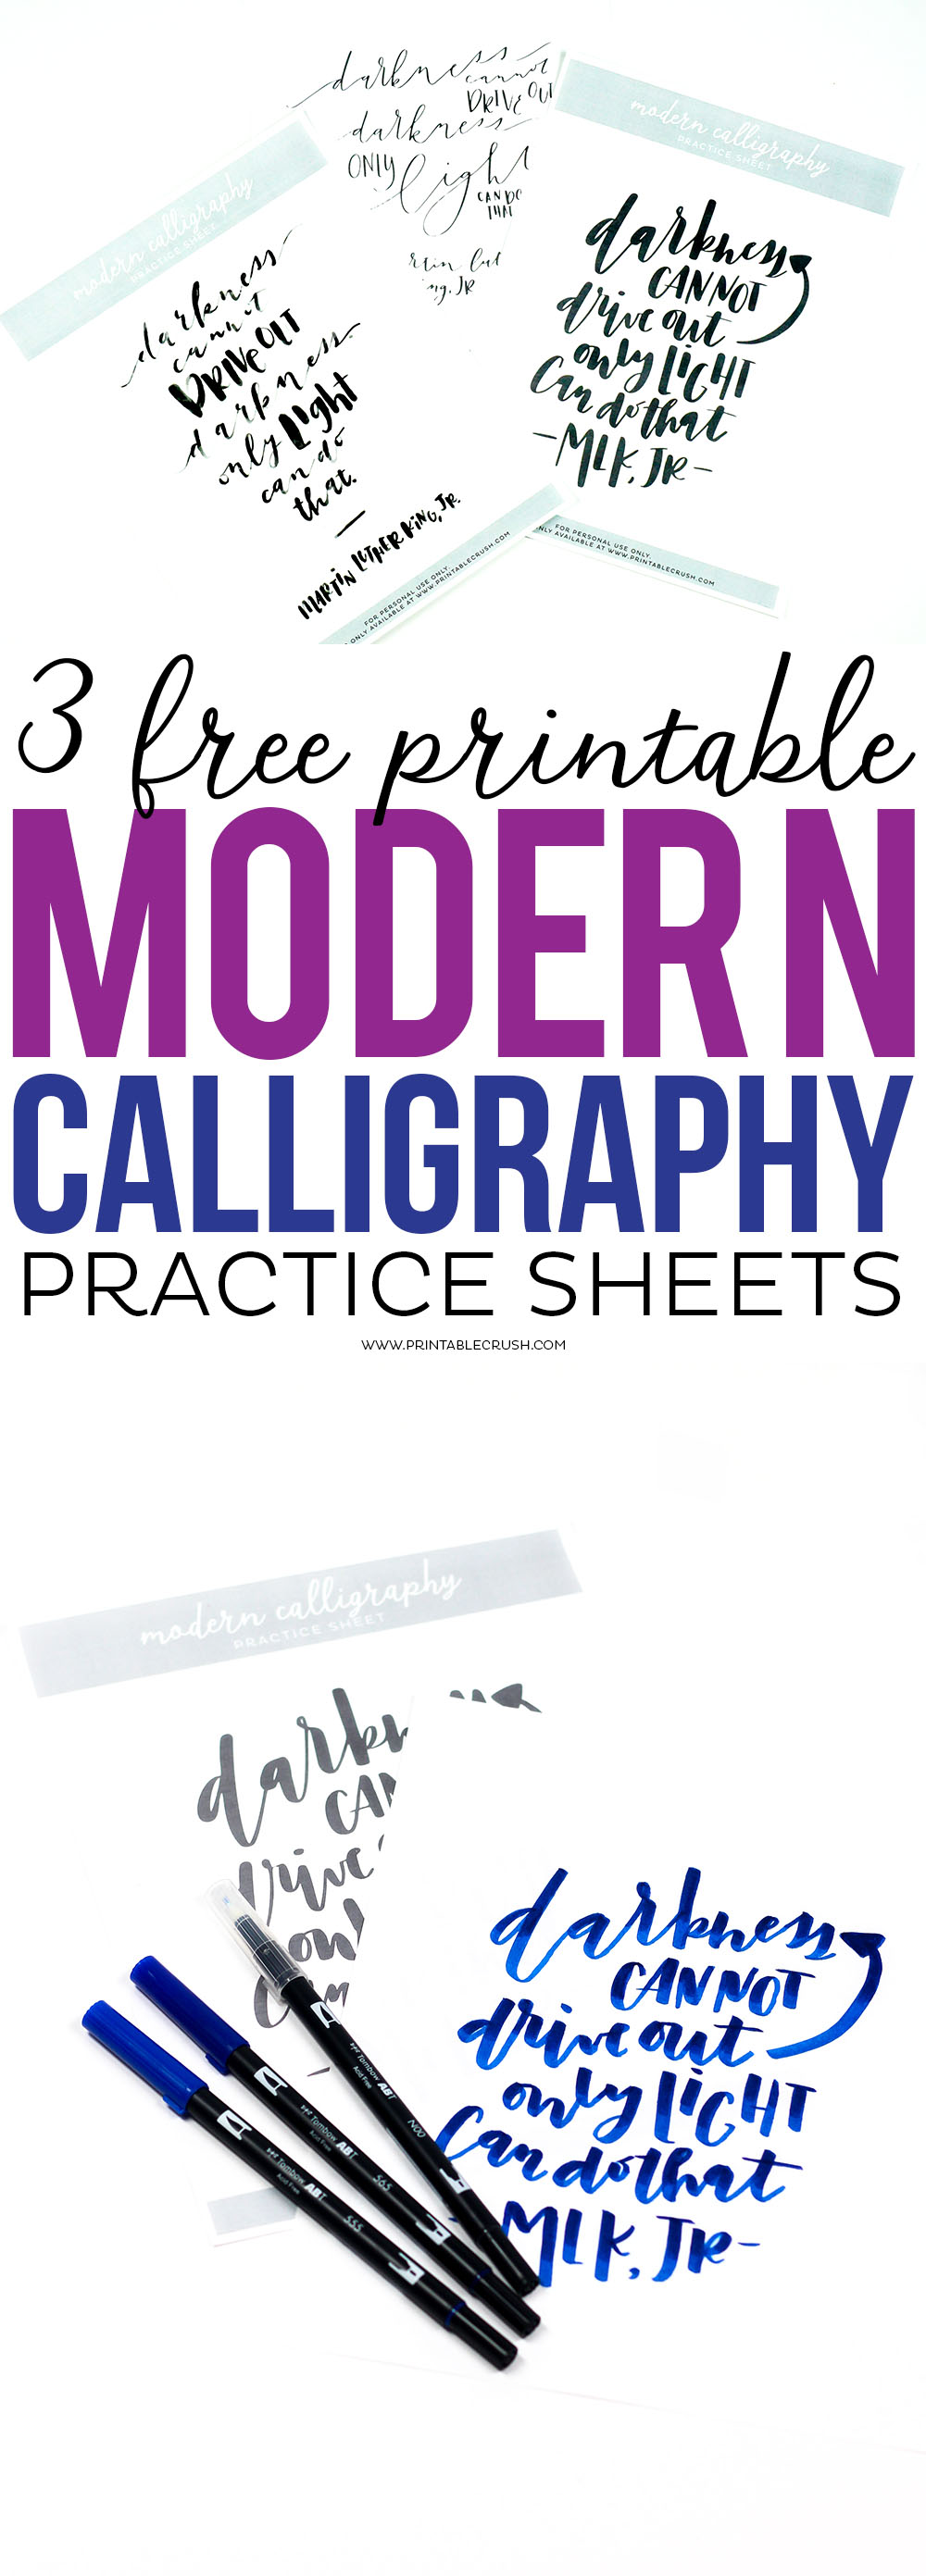 Download These 3 Free Printable Modern Calligraphy Practice Sheets To Try Different Lettering Styles And